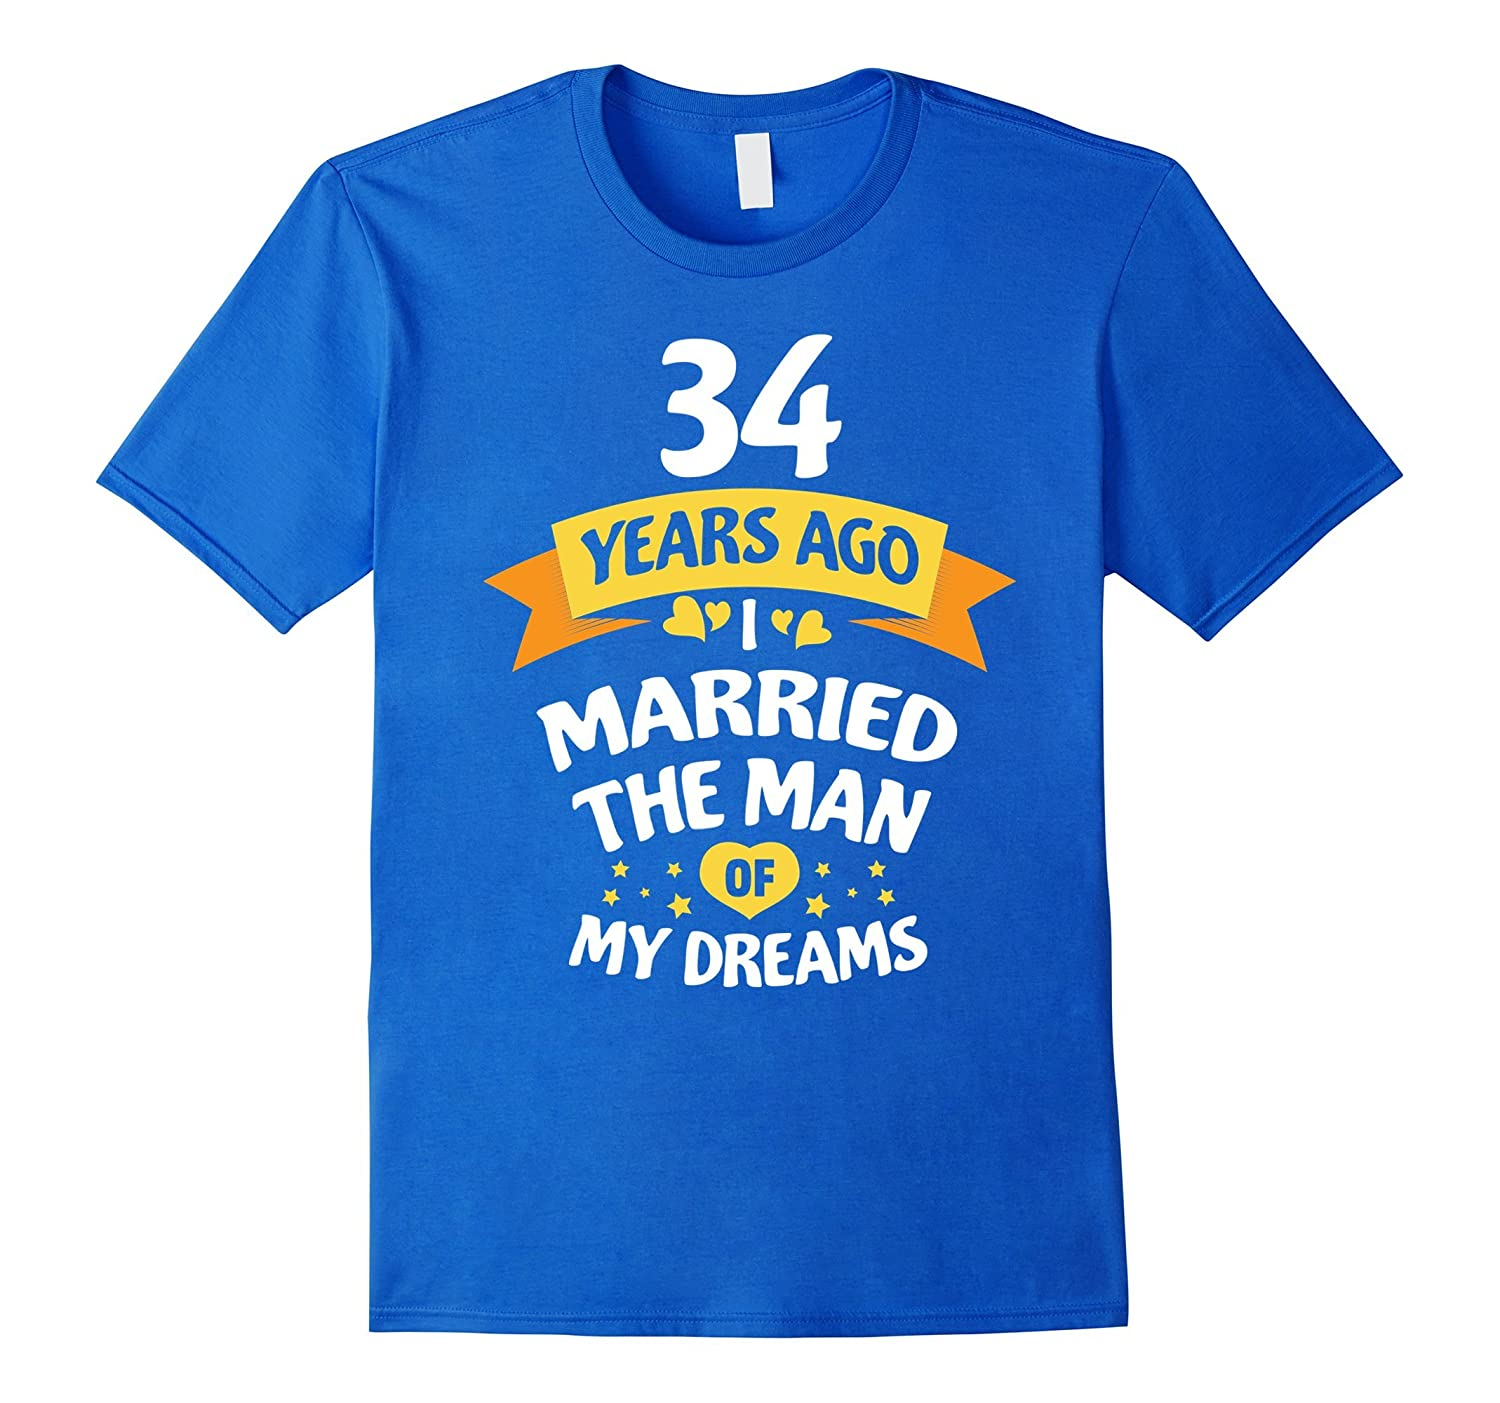 48th Wedding Anniversary Gift Ideas: 34th Wedding Anniversary Gift For Her